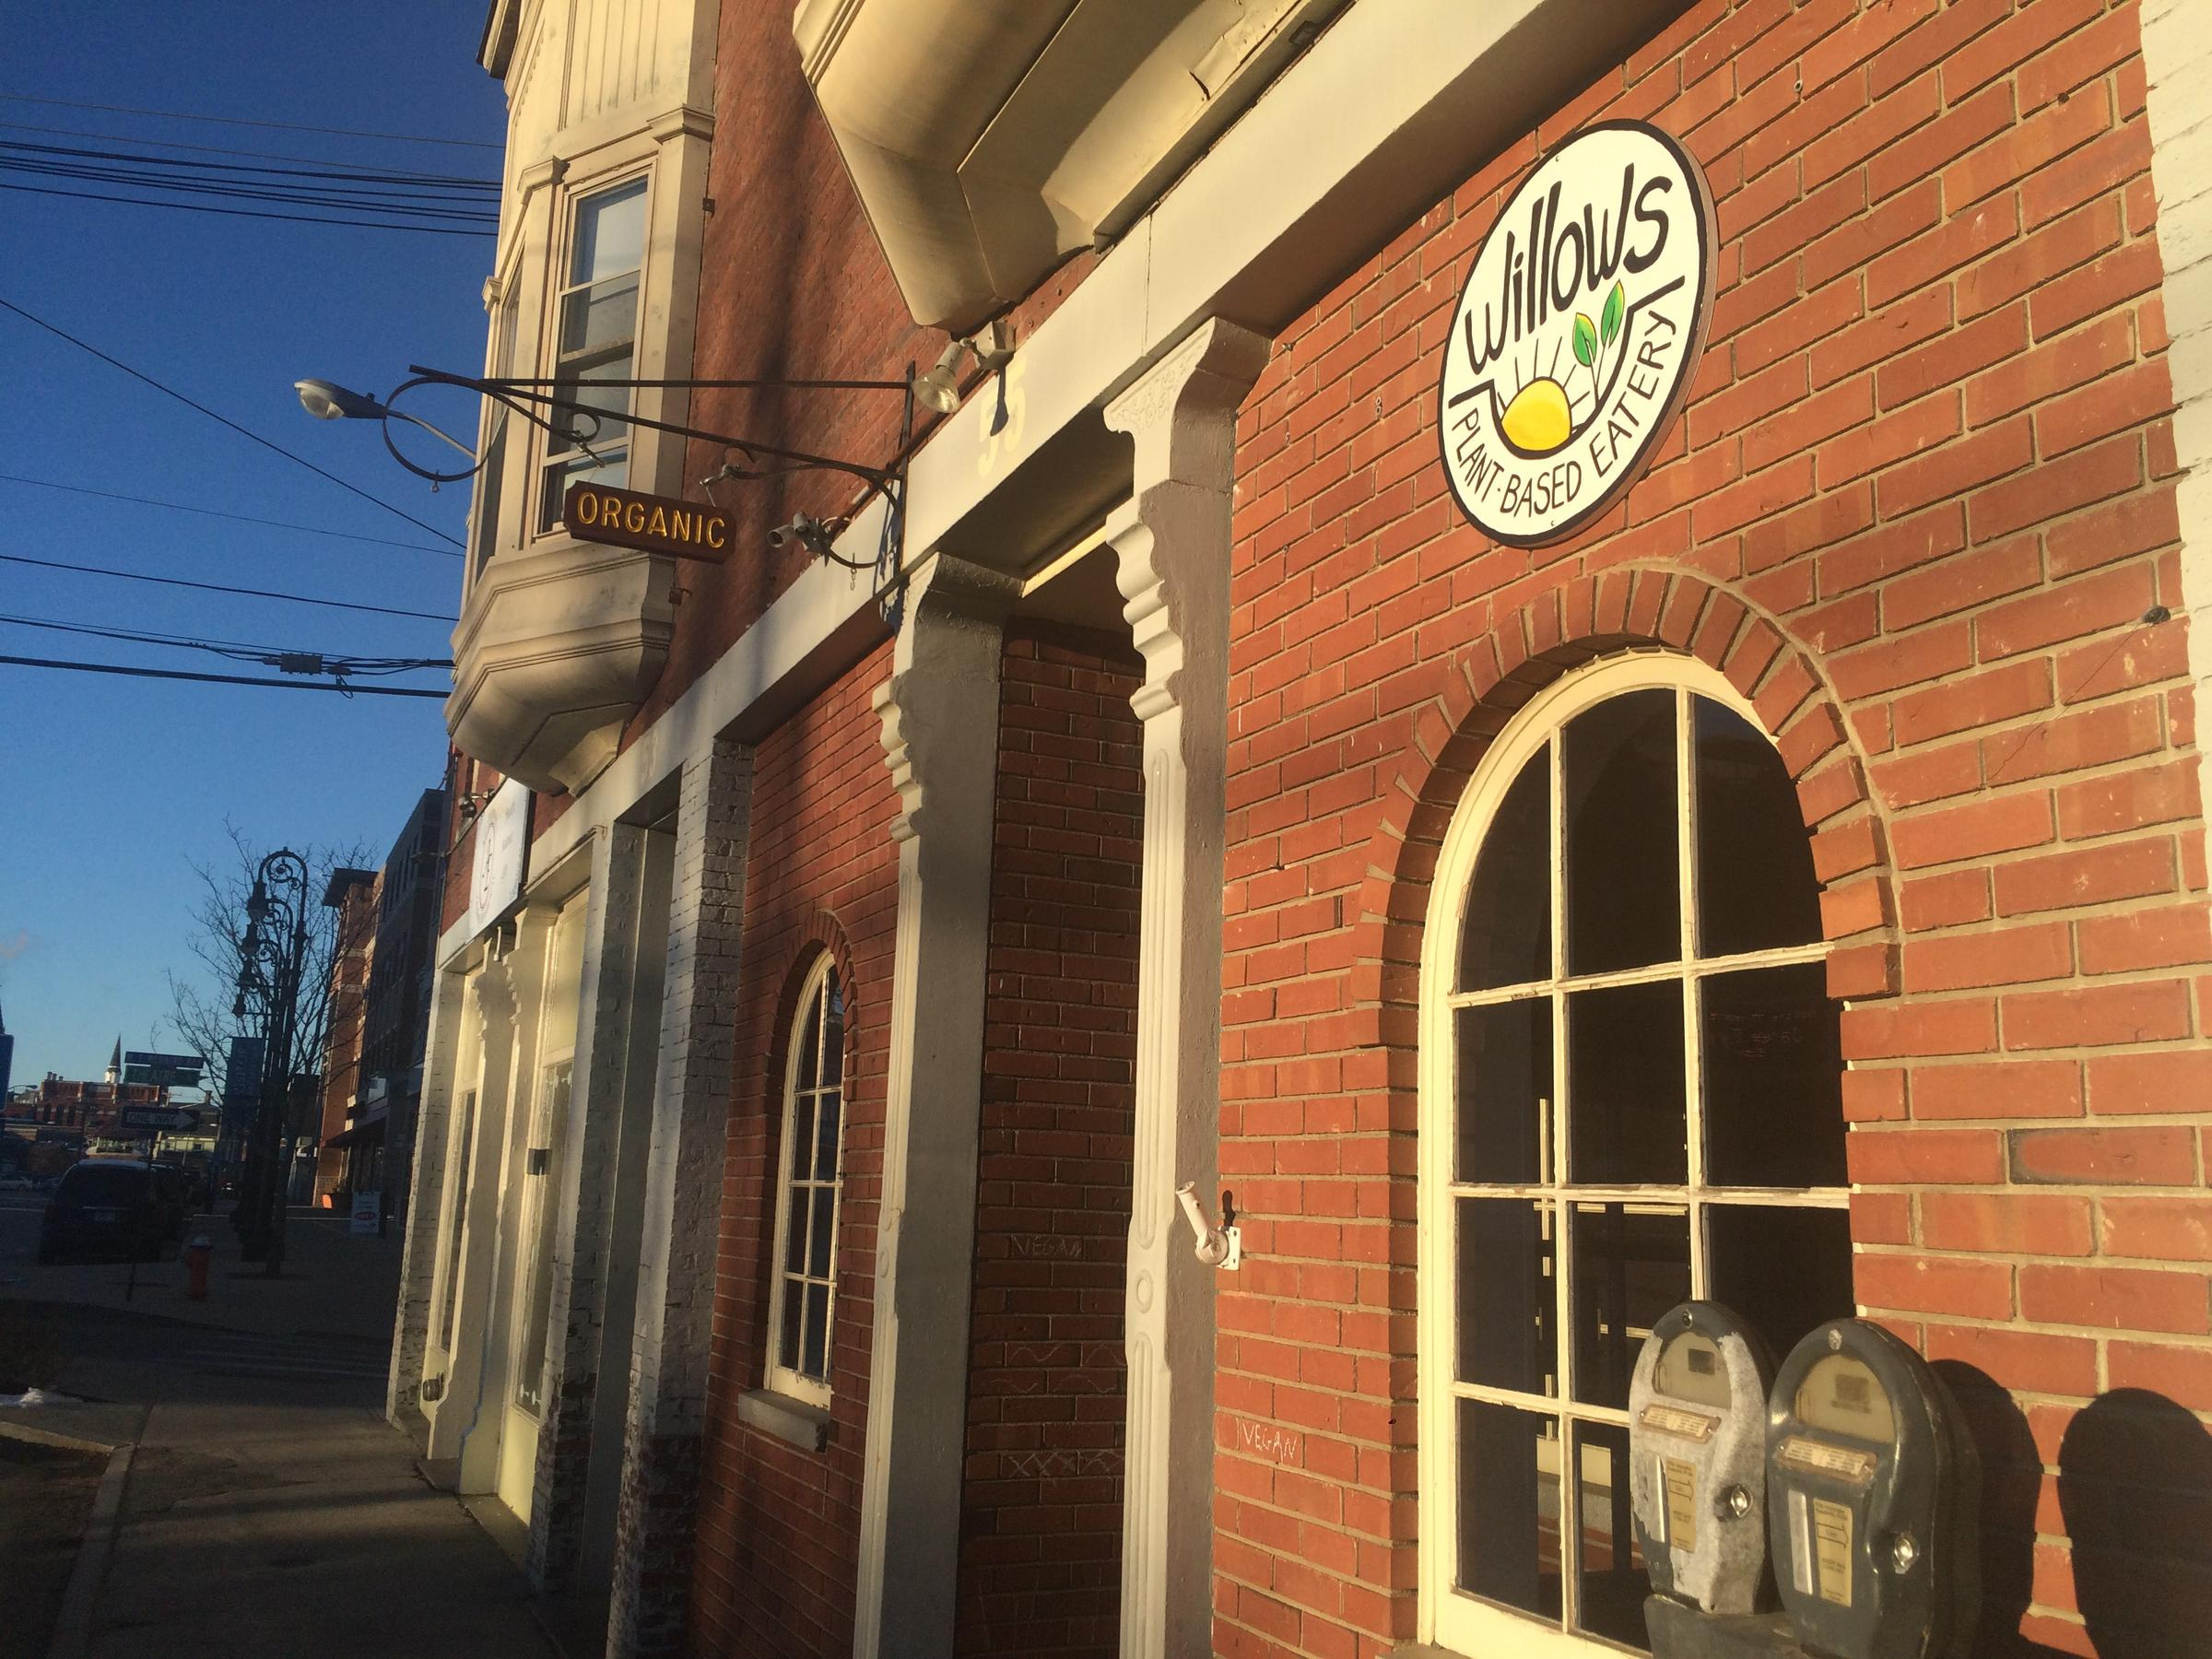 Willows Plant Based Eatery In Downtown Concord Is An All Vegan And Organic Restaurant That Opened Up April